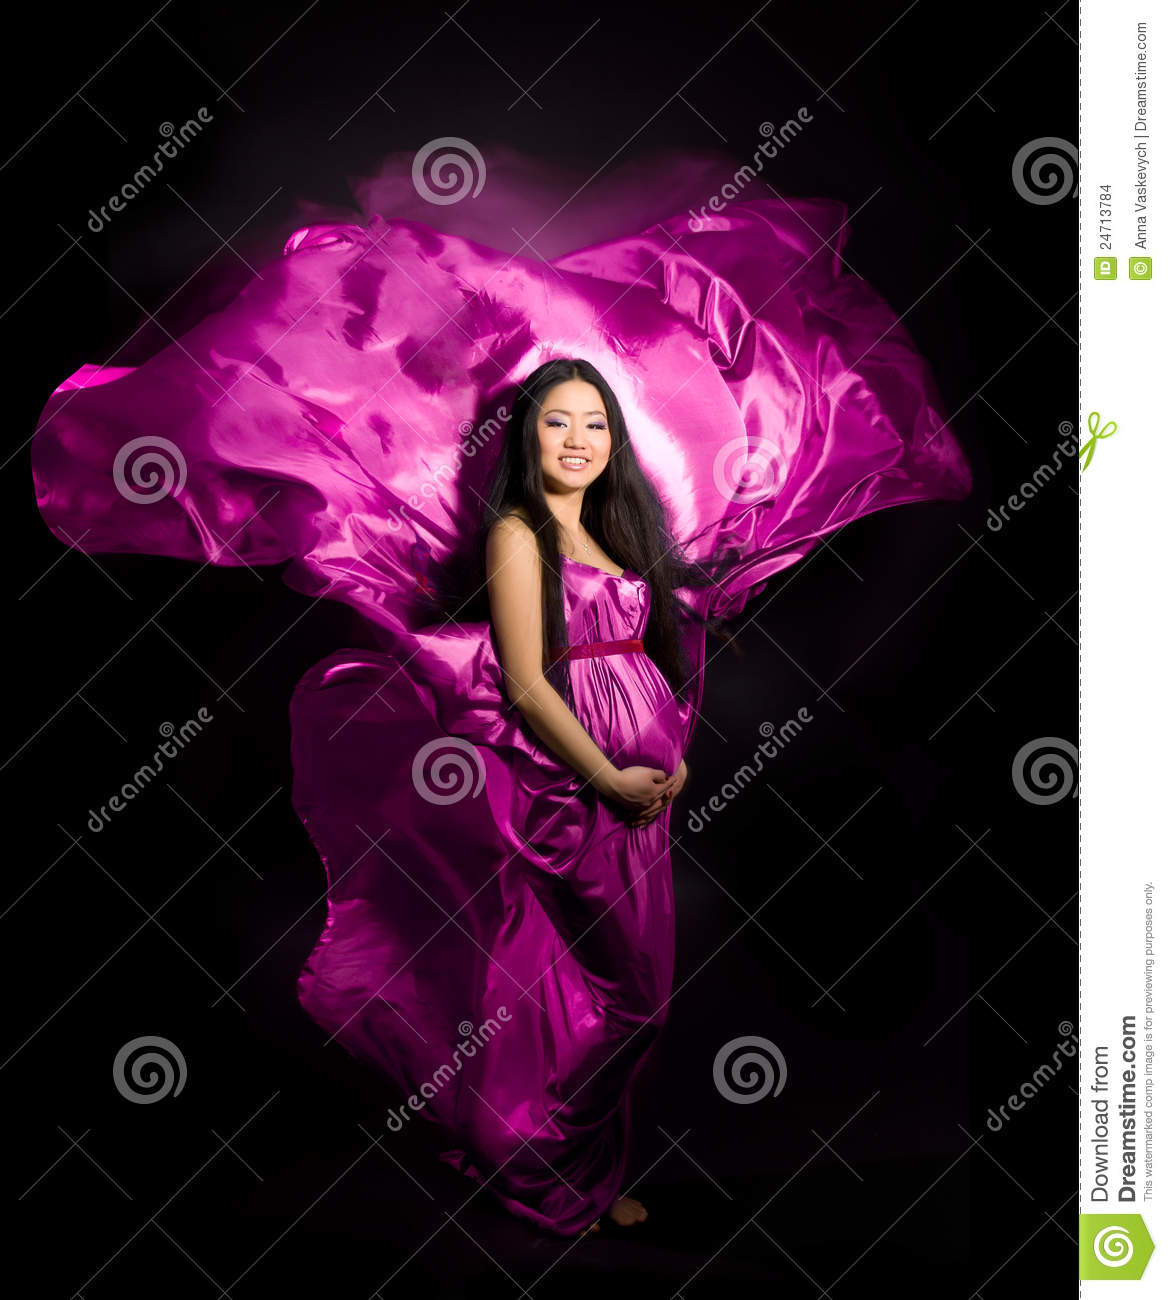 Pregnant woman in a pink dress